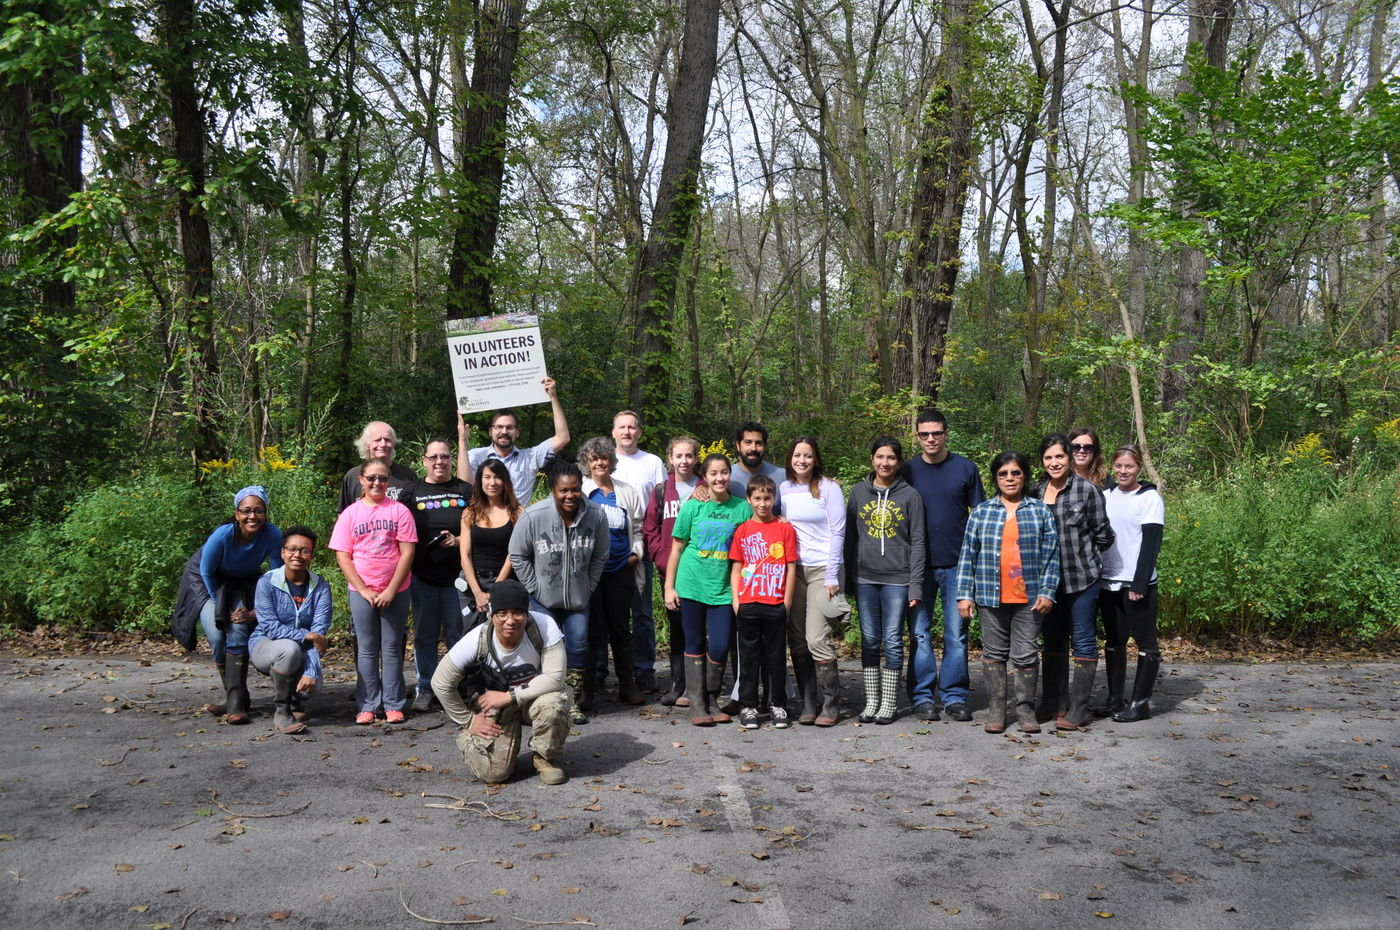 """Habitat restoration volunteers of all ages gather for a photo in a wooded area. One person holds up a """"Volunteers in Action"""" sign."""